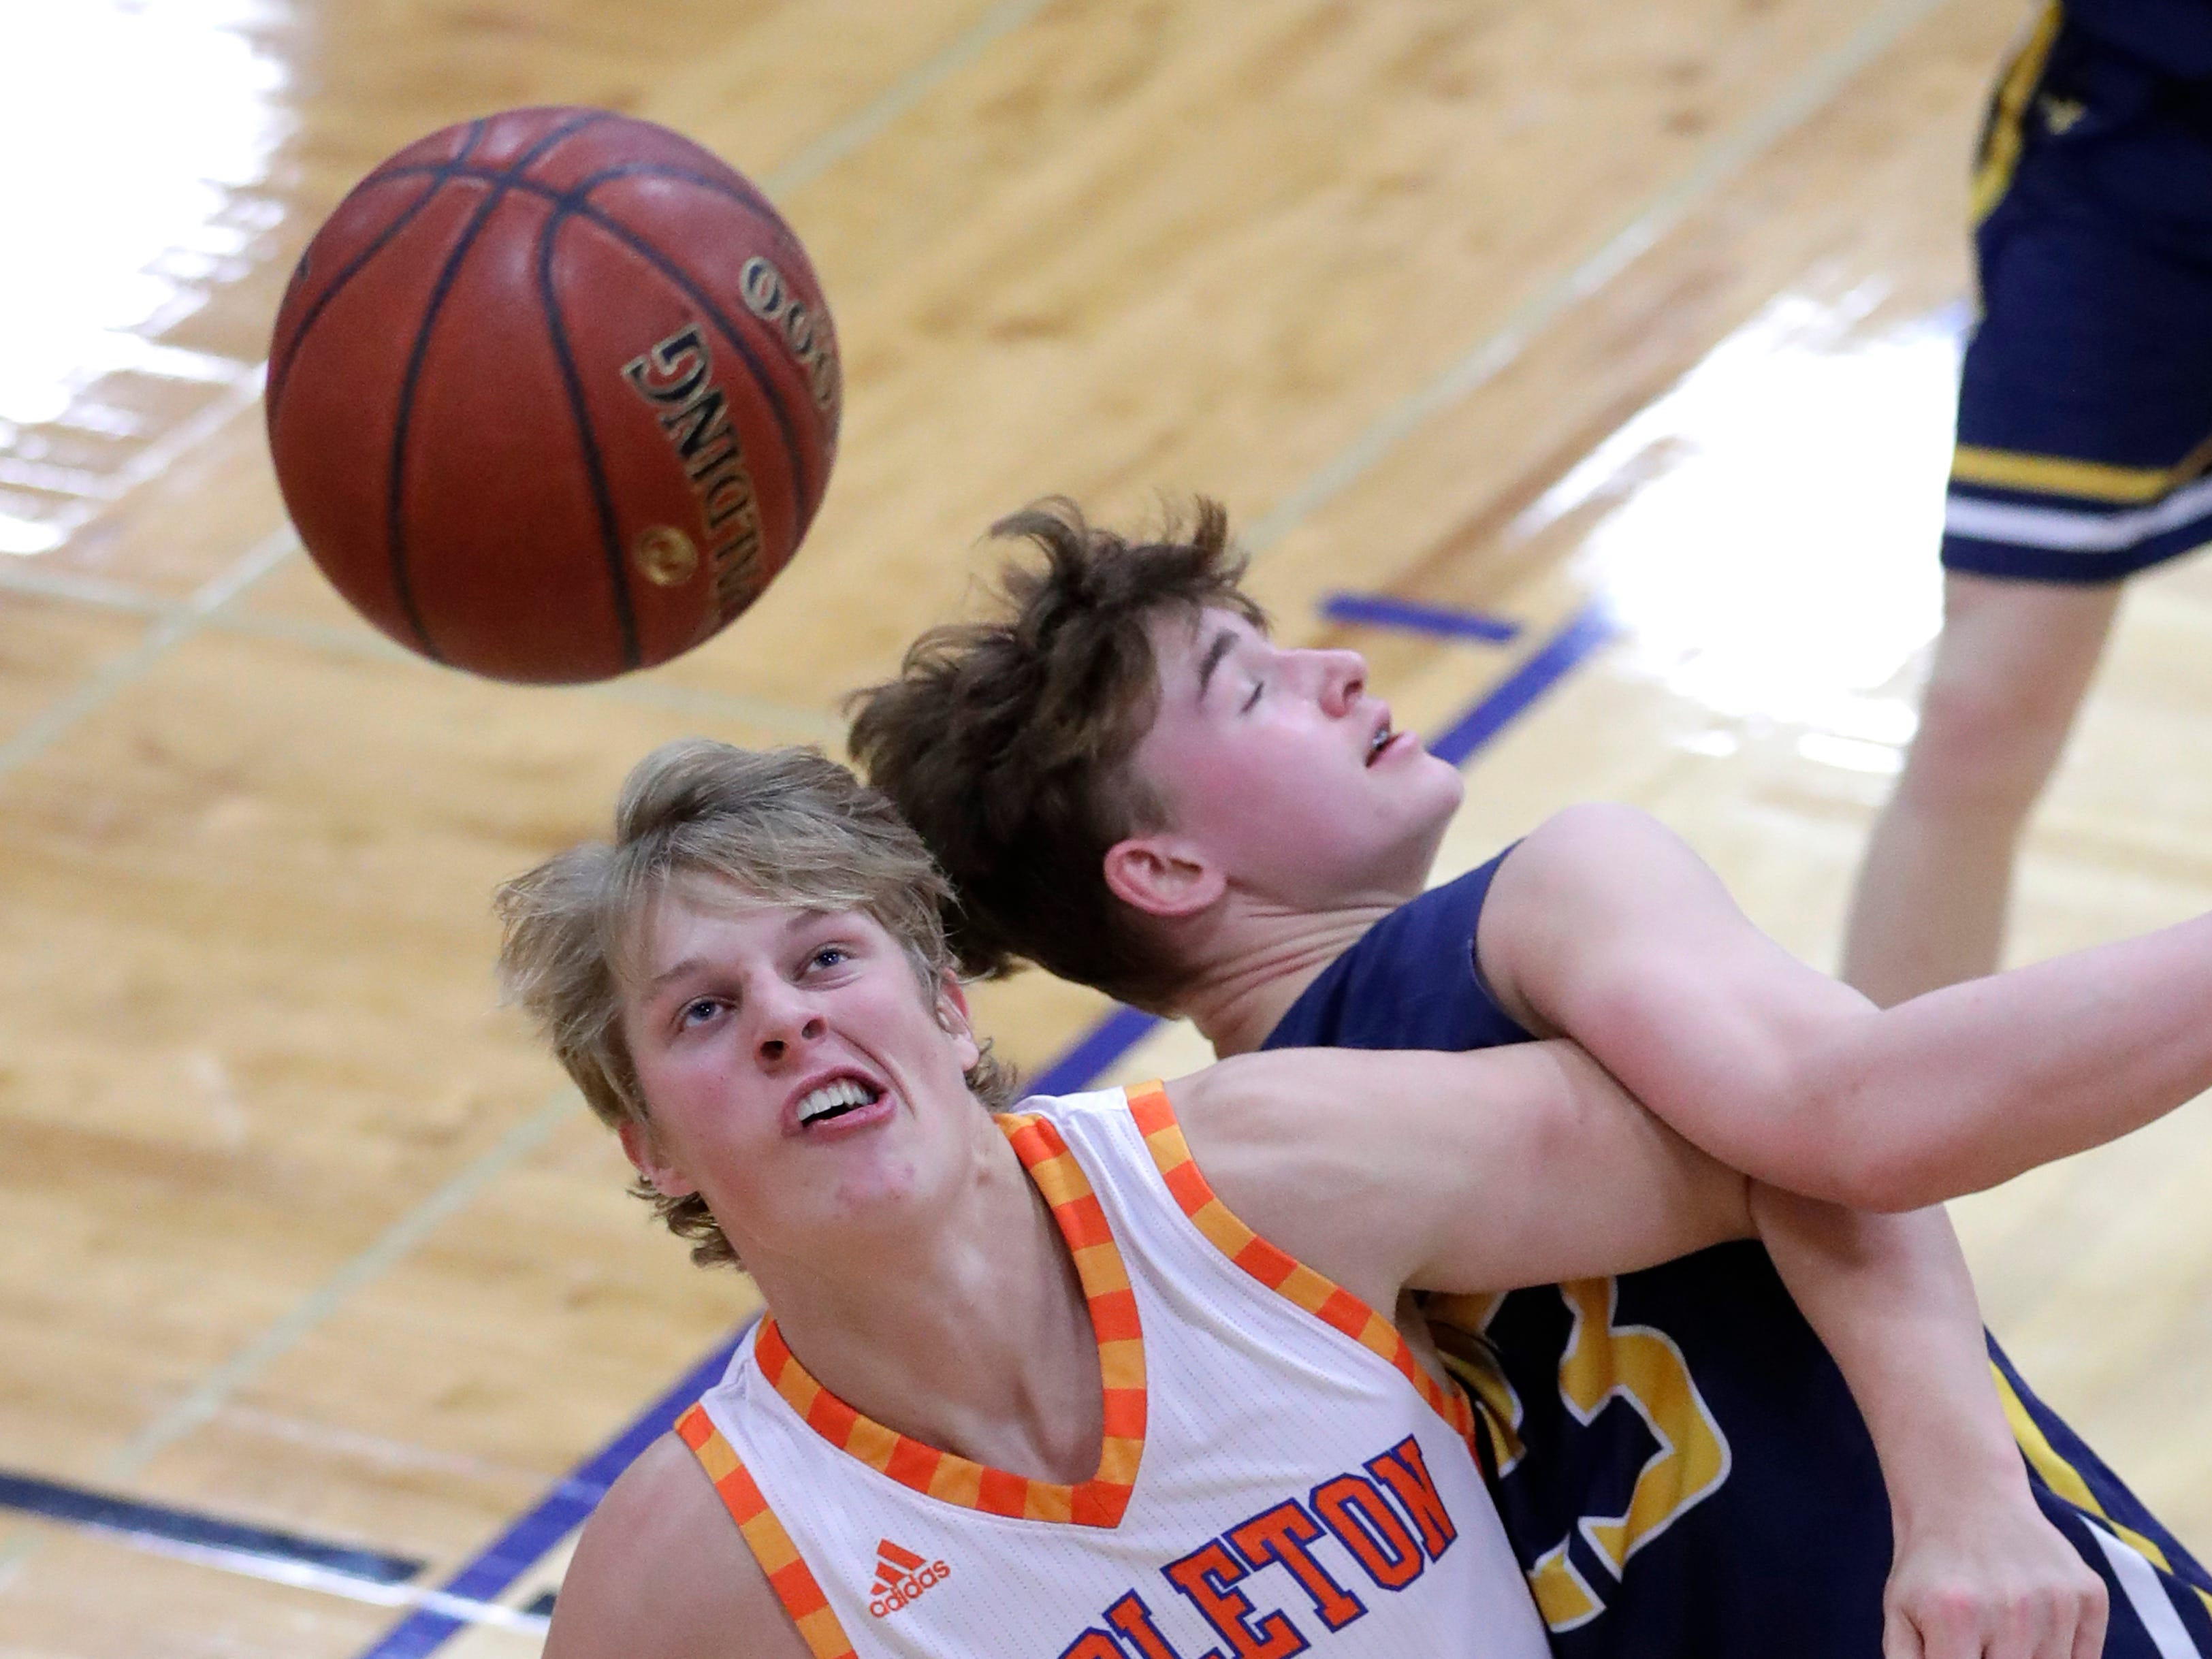 Appleton West  High School's Sam Pitz (31) positions himself for a rebound against Wausau West High School's Logan White (23) during their boys basketball game Friday, December 28, 2018, in Appleton, Wis. Dan Powers/USA TODAY NETWORK-Wisconsin